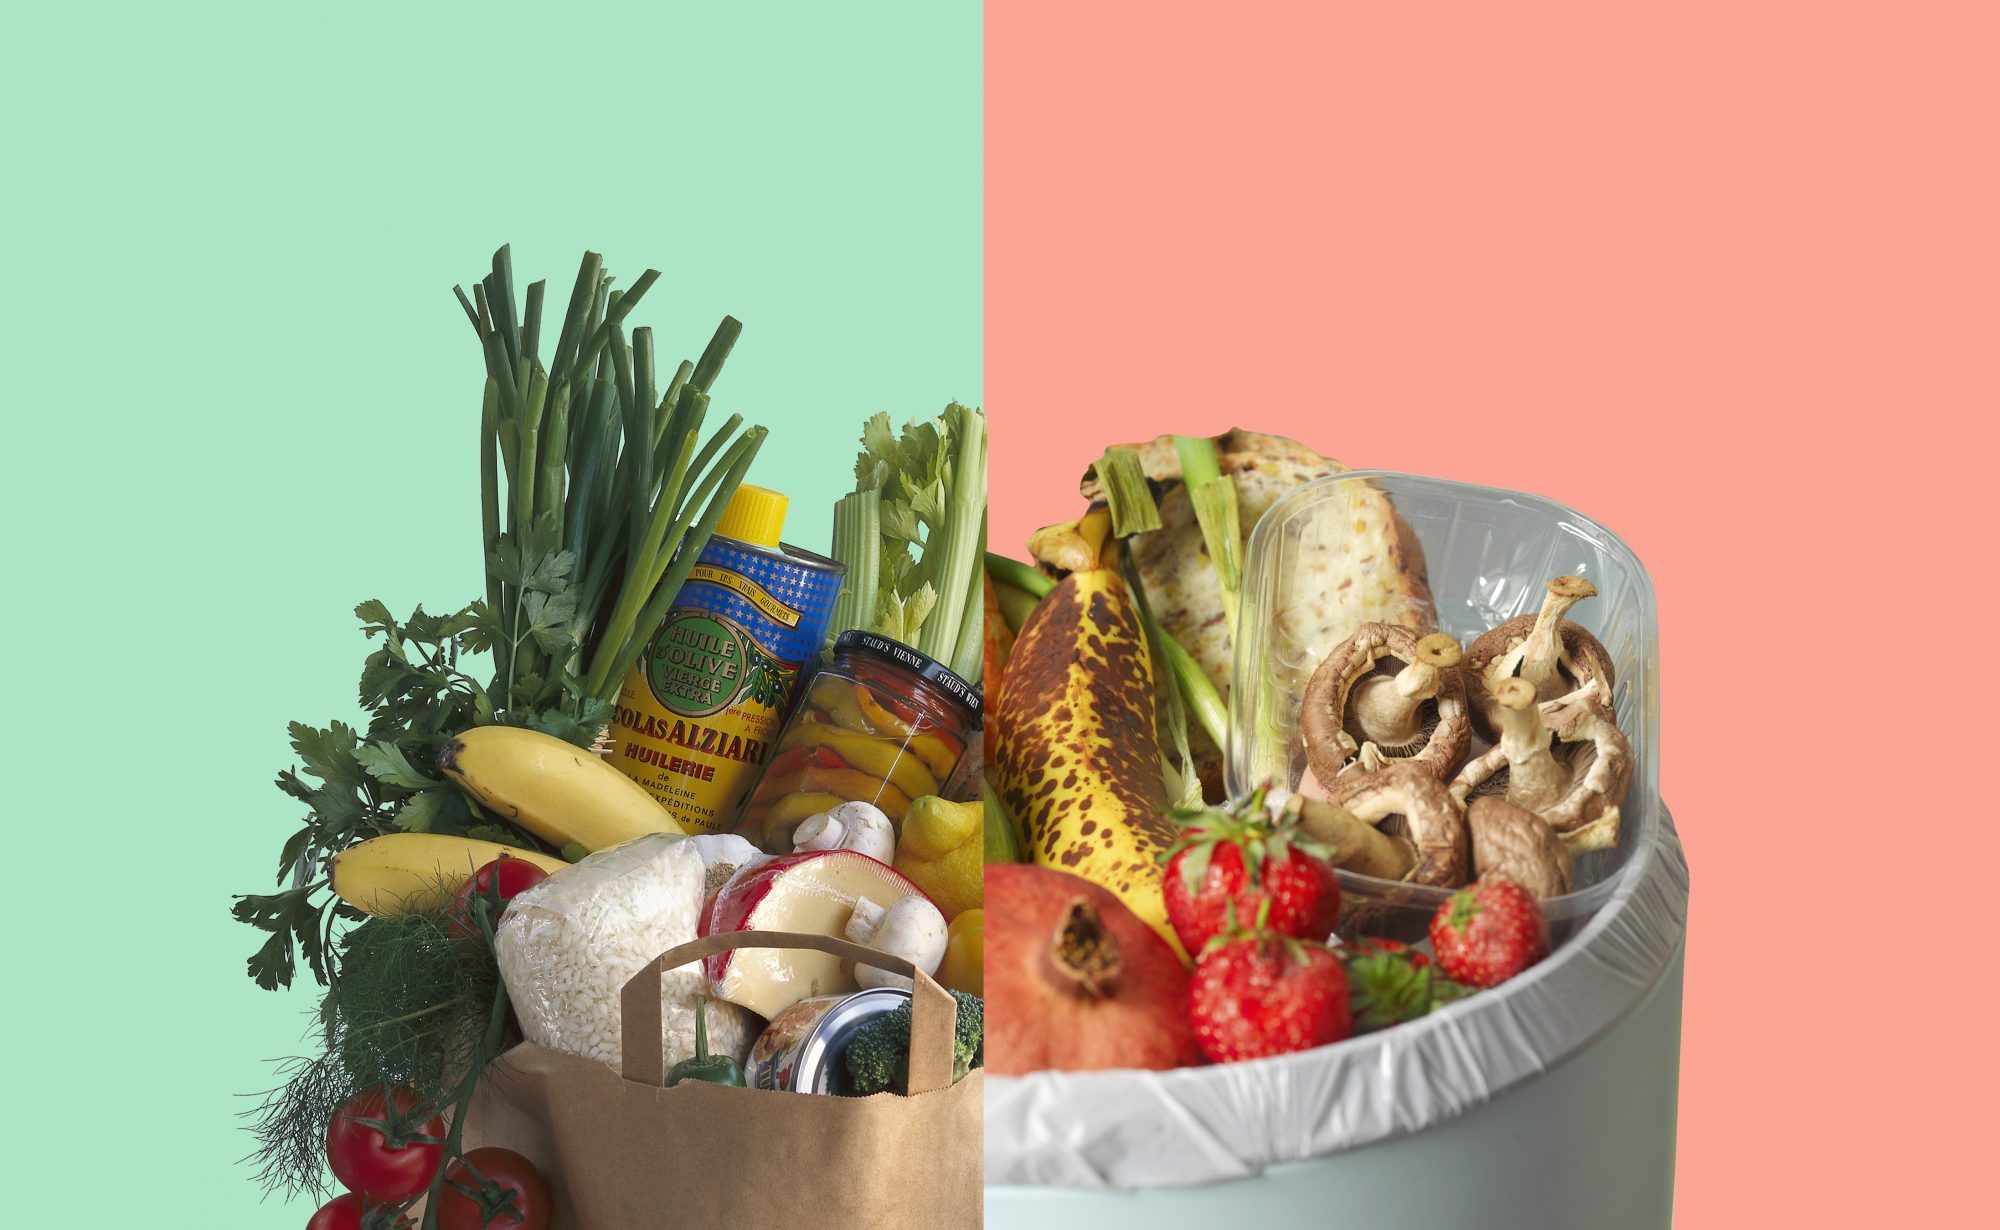 Food Waste in America, fruits and vegetables in shopping bag and trash can